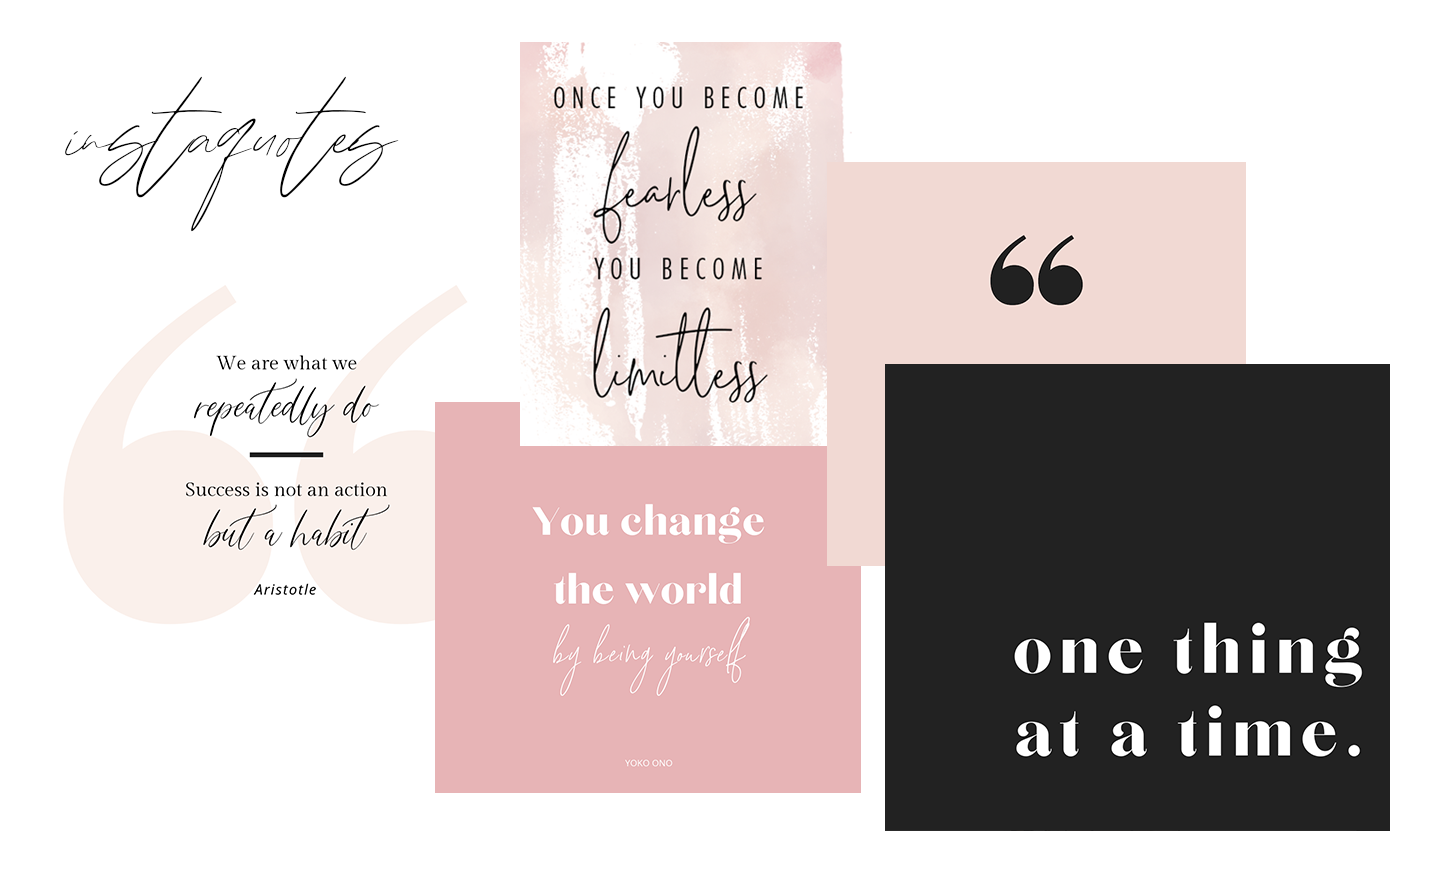 Social Media Quotes - For those days when you just need something to post. Pre-made social media quotes to inspire, empower, or just make your followers laugh! New quotes are released every month so you'll always have something fresh. Guaranteed to get lots of engagement on social media.